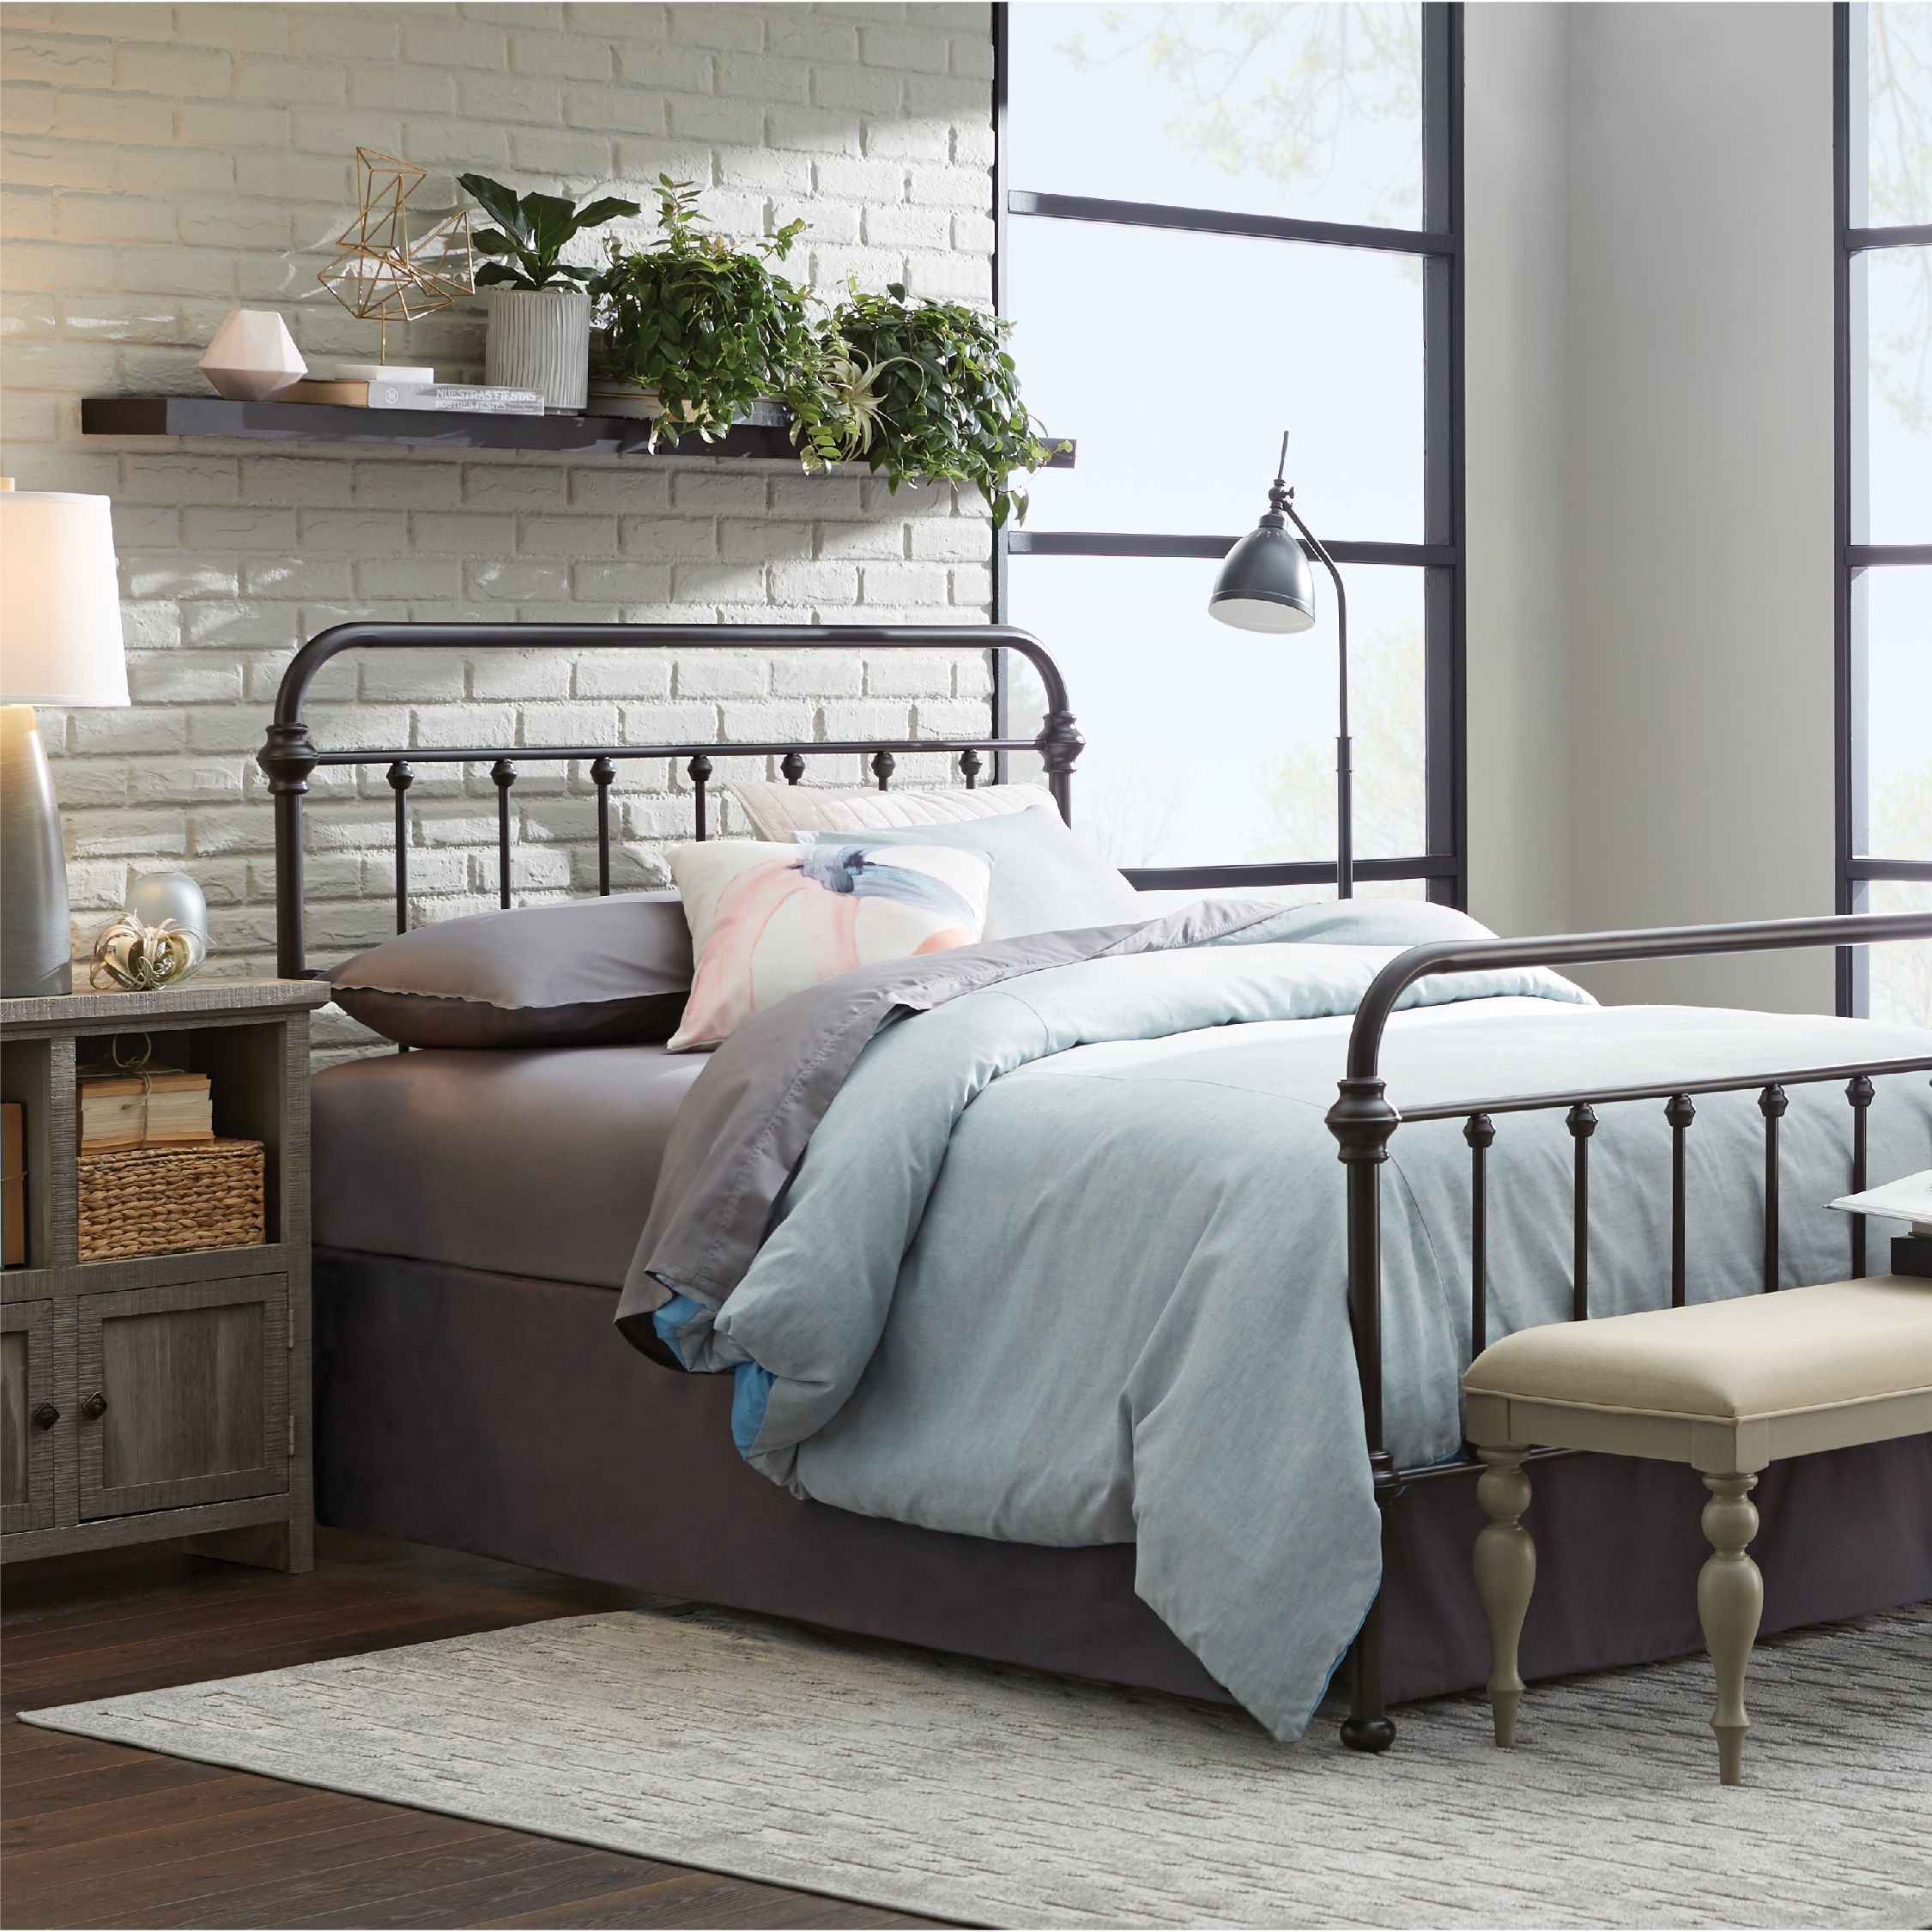 Create Your Own Cozy Retreat With Help From The Laguna Bed Home